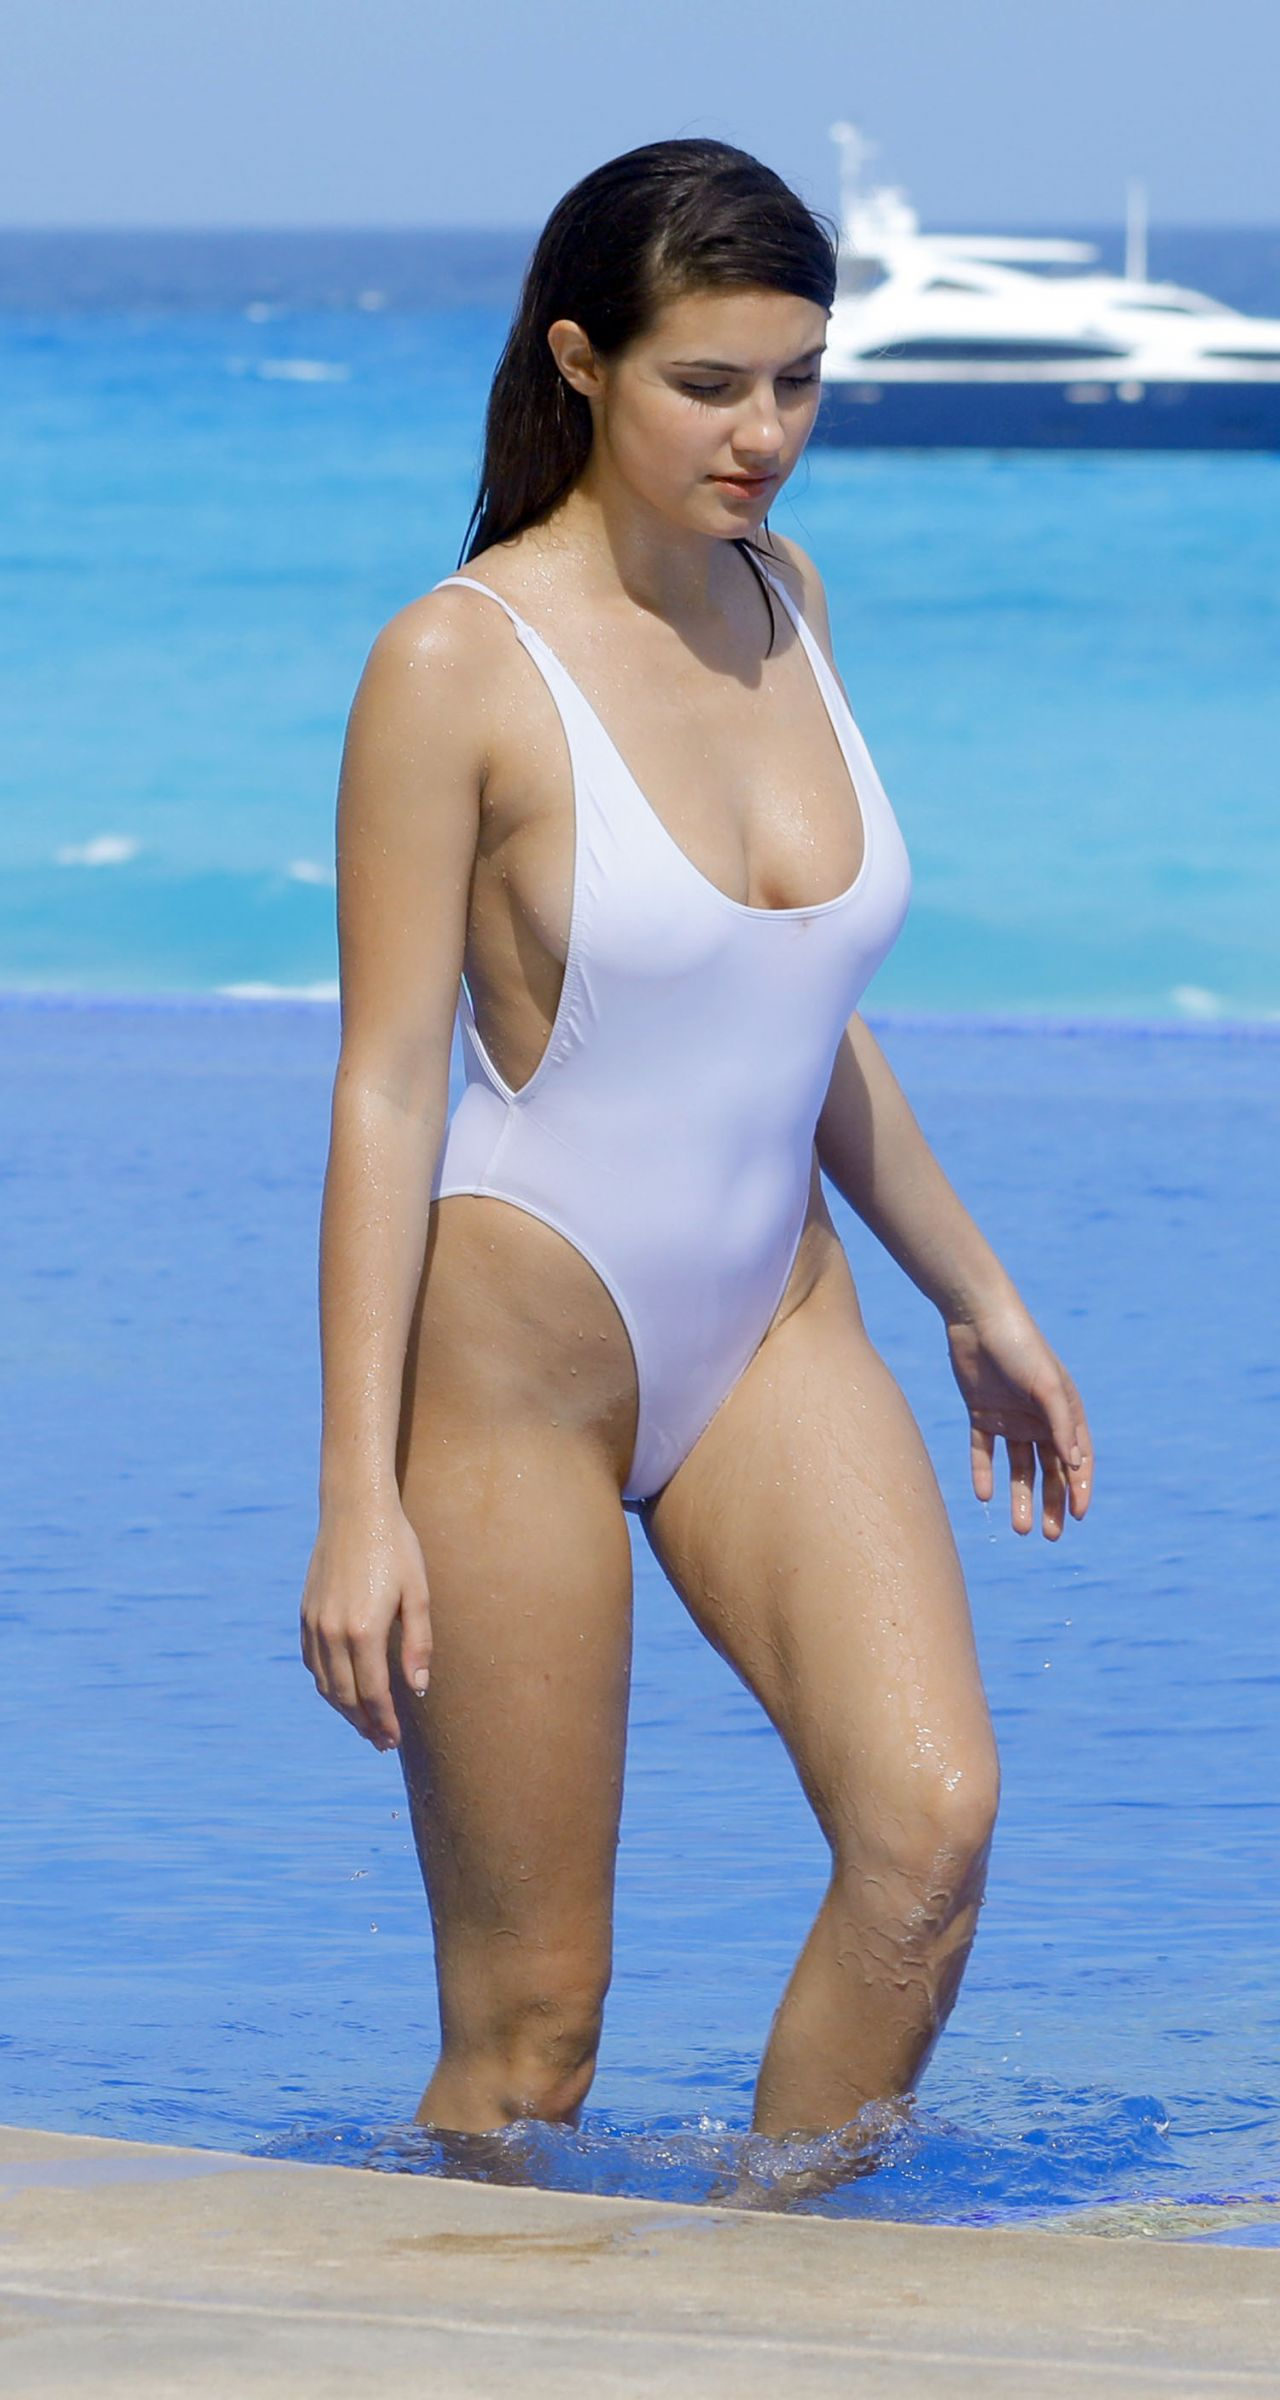 Tao wickrath shows off her curves in white swimsuit in for European pool show